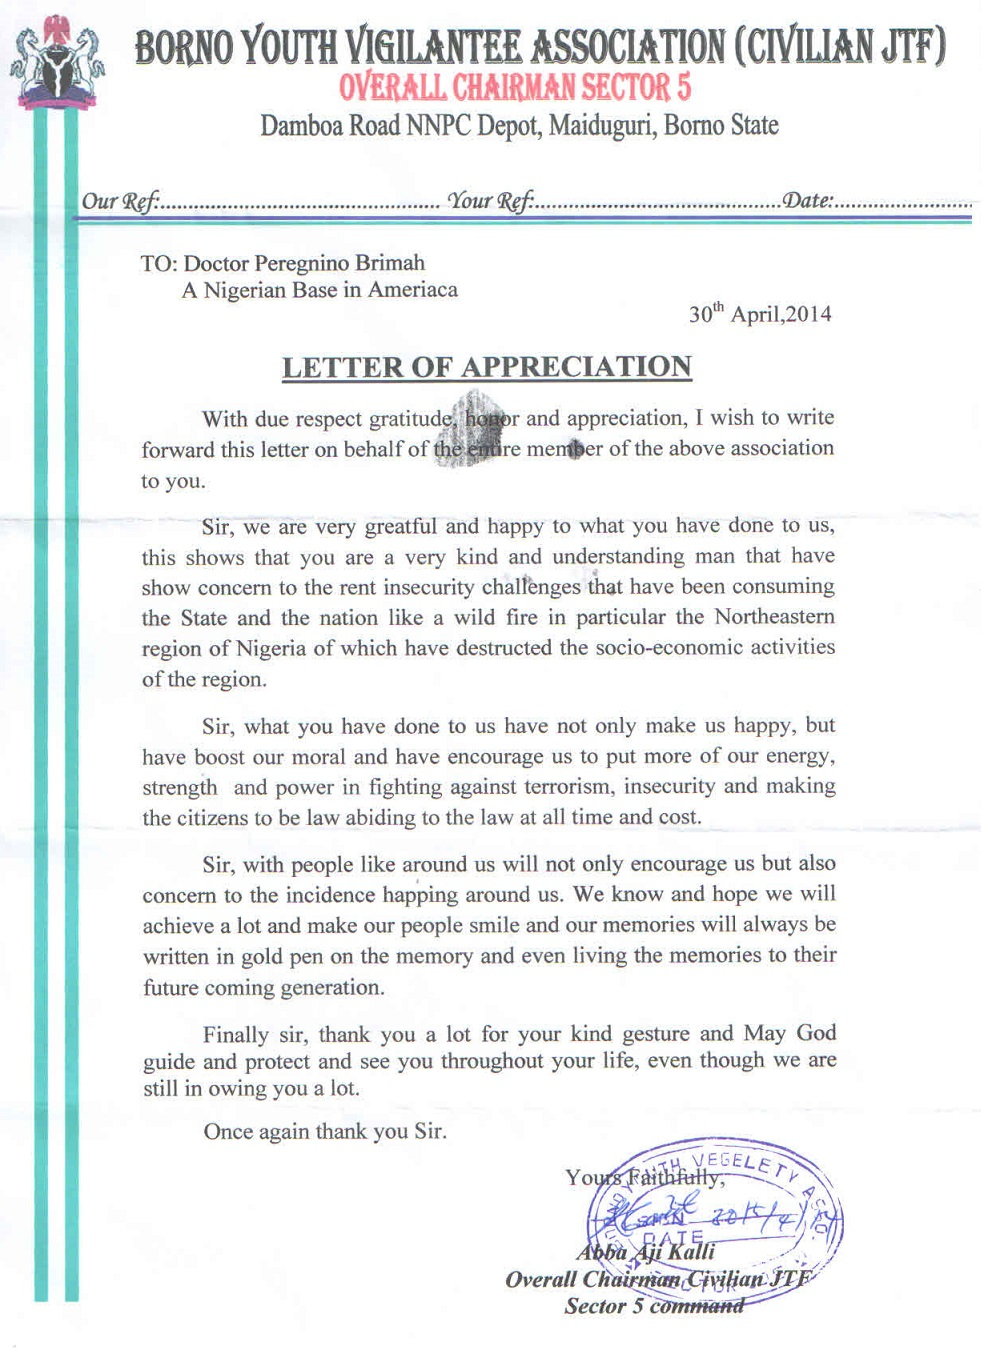 borno youth vigilantes formally thank ends  dr  brimah for support in war against terror  u2013 every